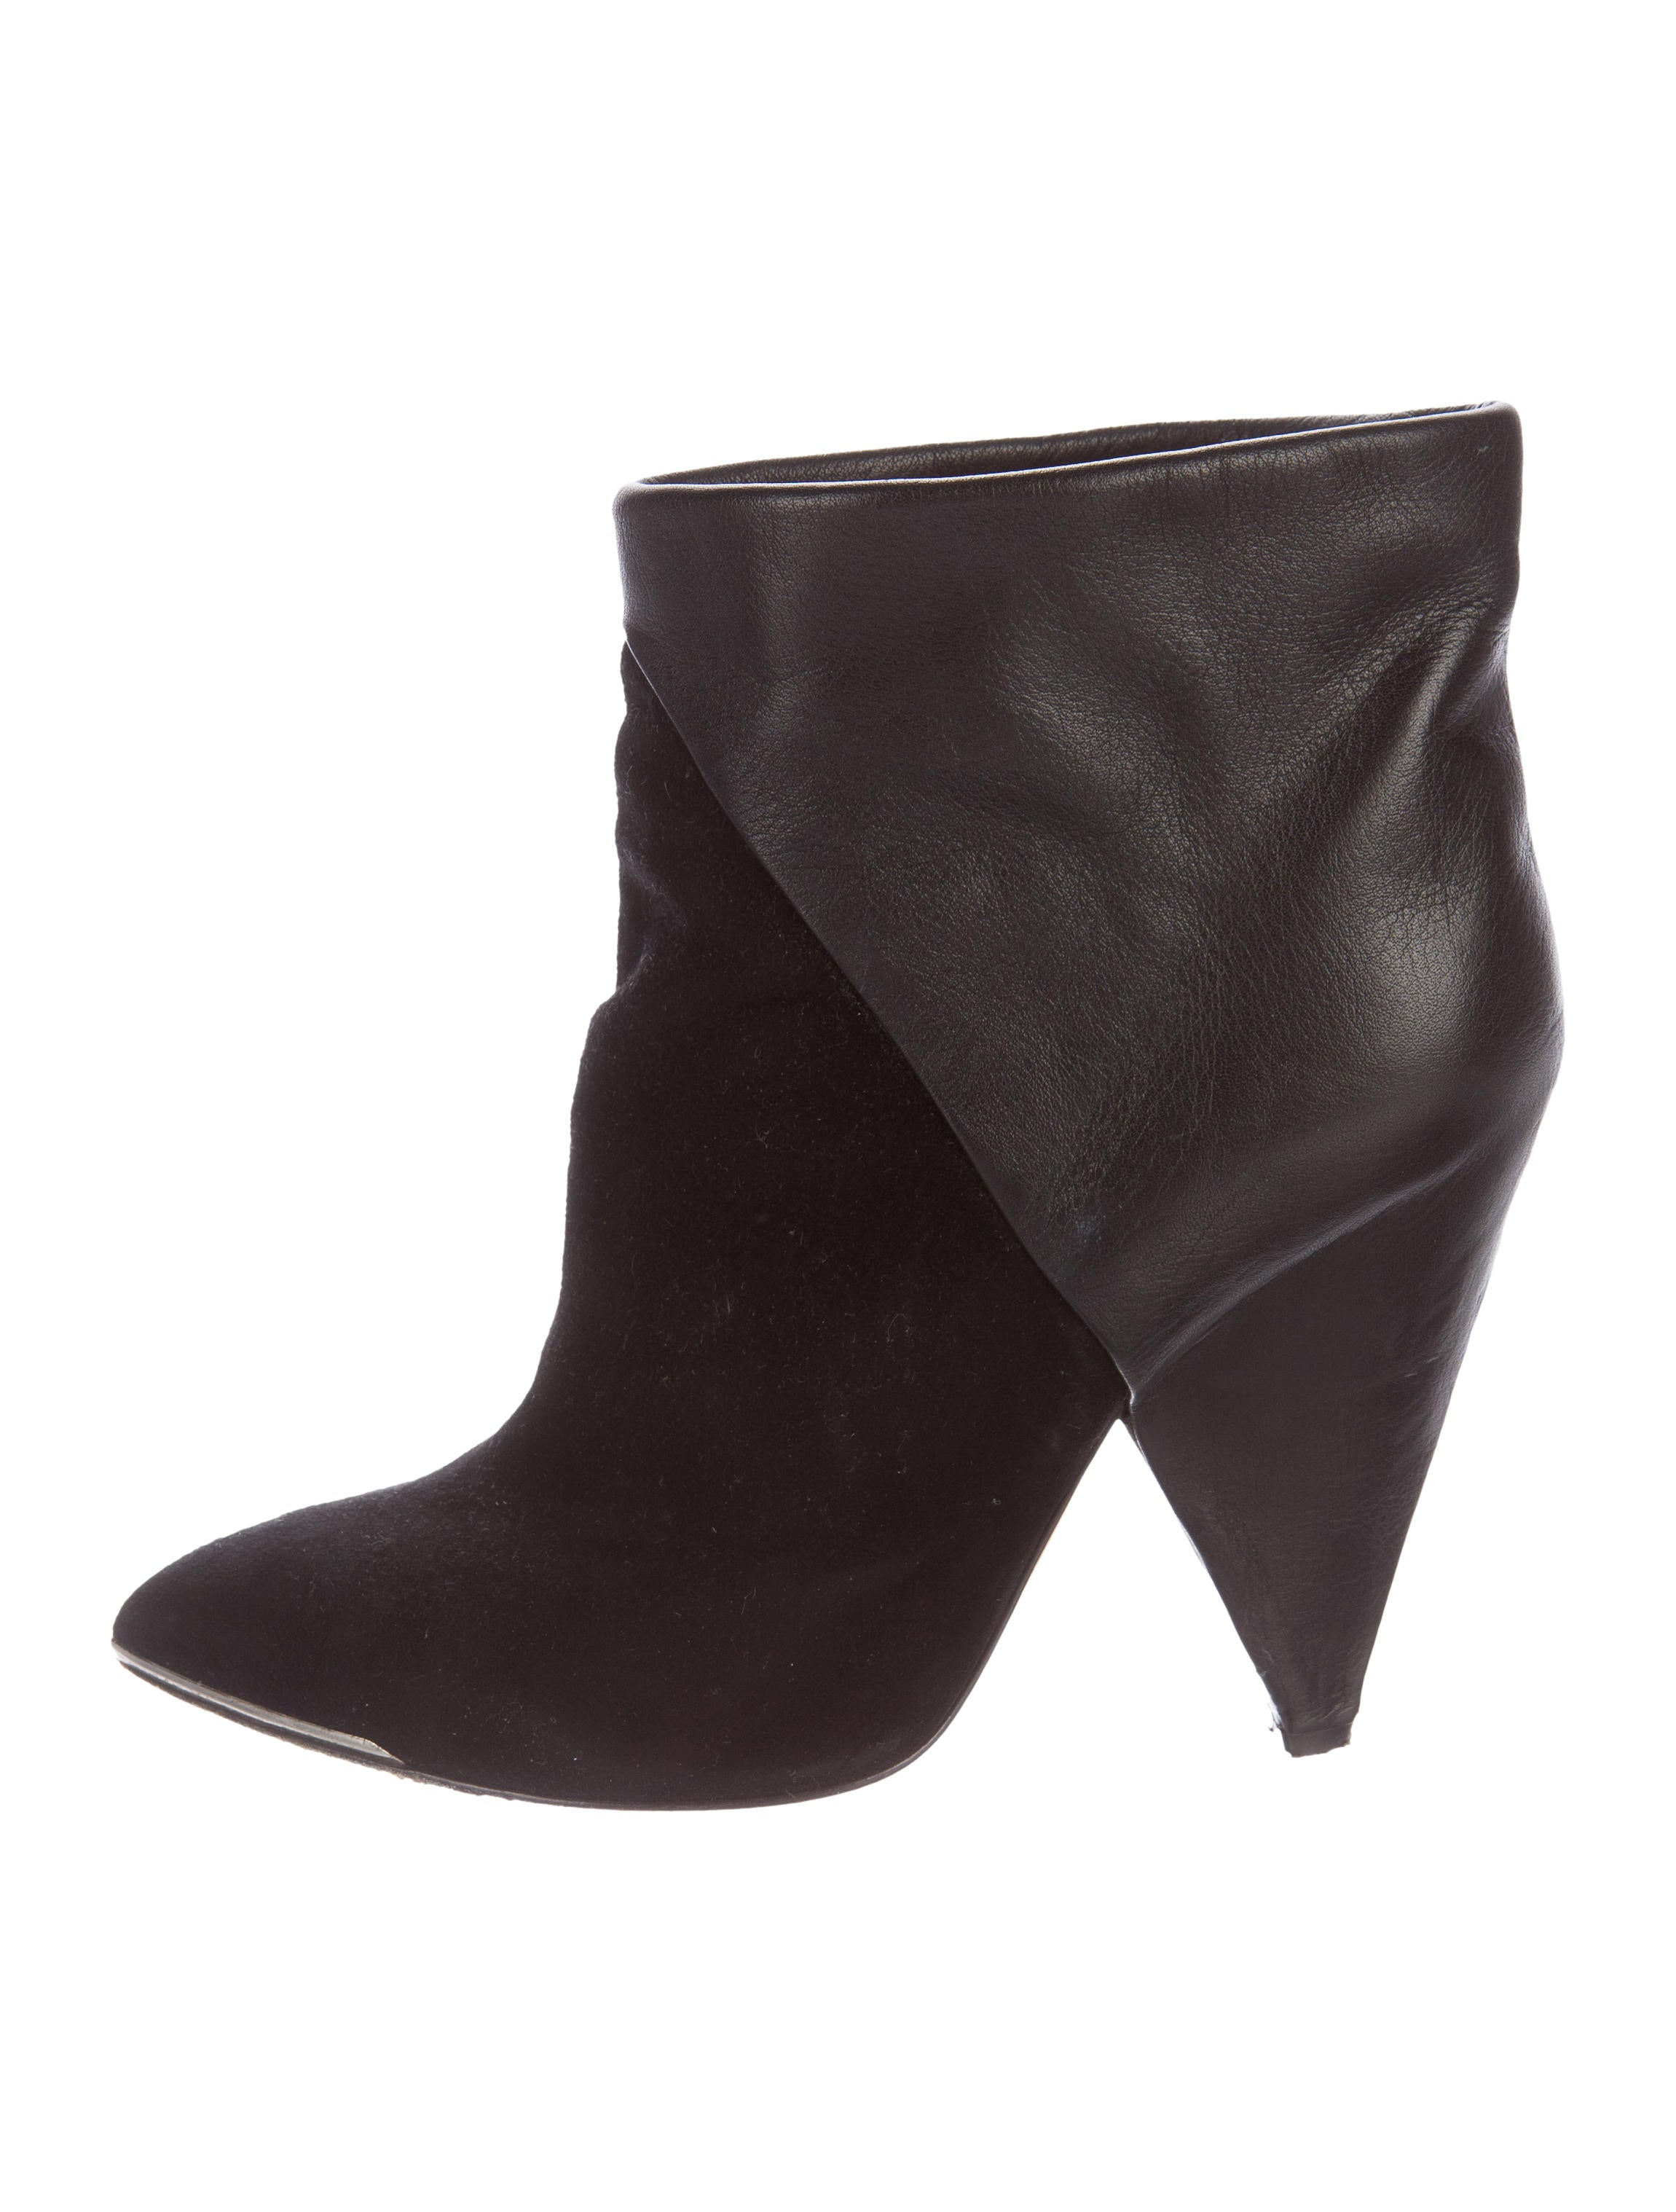 Wonderful Prada Pointed-Toe Ankle Boots - Shoes - PRA138455   The RealReal